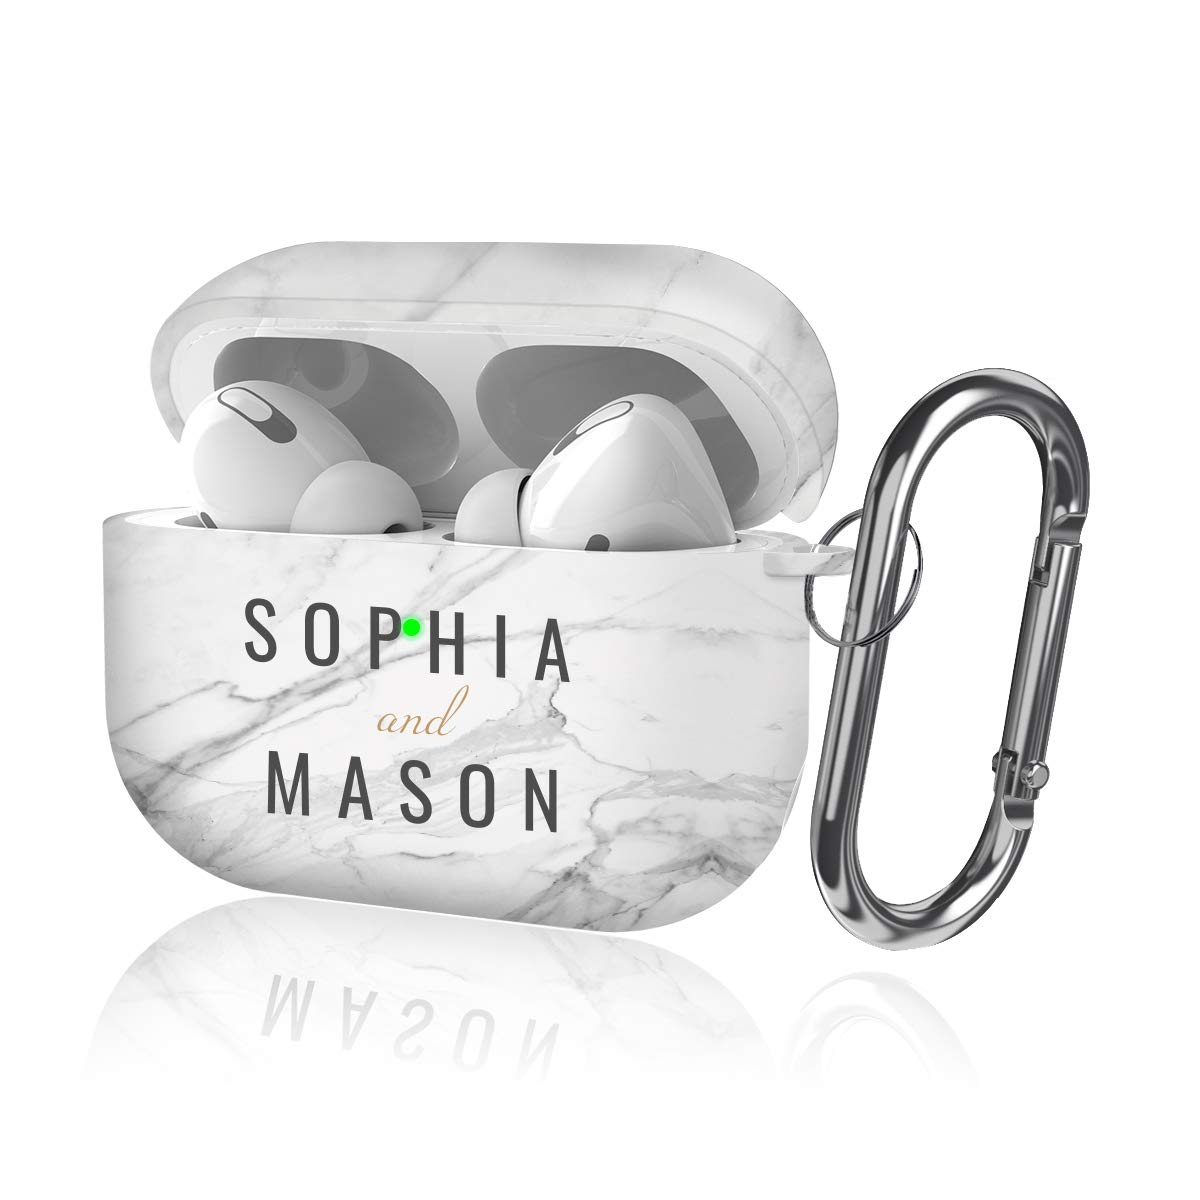 Youtec Airpods pro Case Cover, Cute Airpods pro 3 Protective Cover Skin for Girl Women Soft TPU Case with Keychain Compatible Airpod pro Charging Case 3rd Gen 2019 [Front LED Visible], White Marble